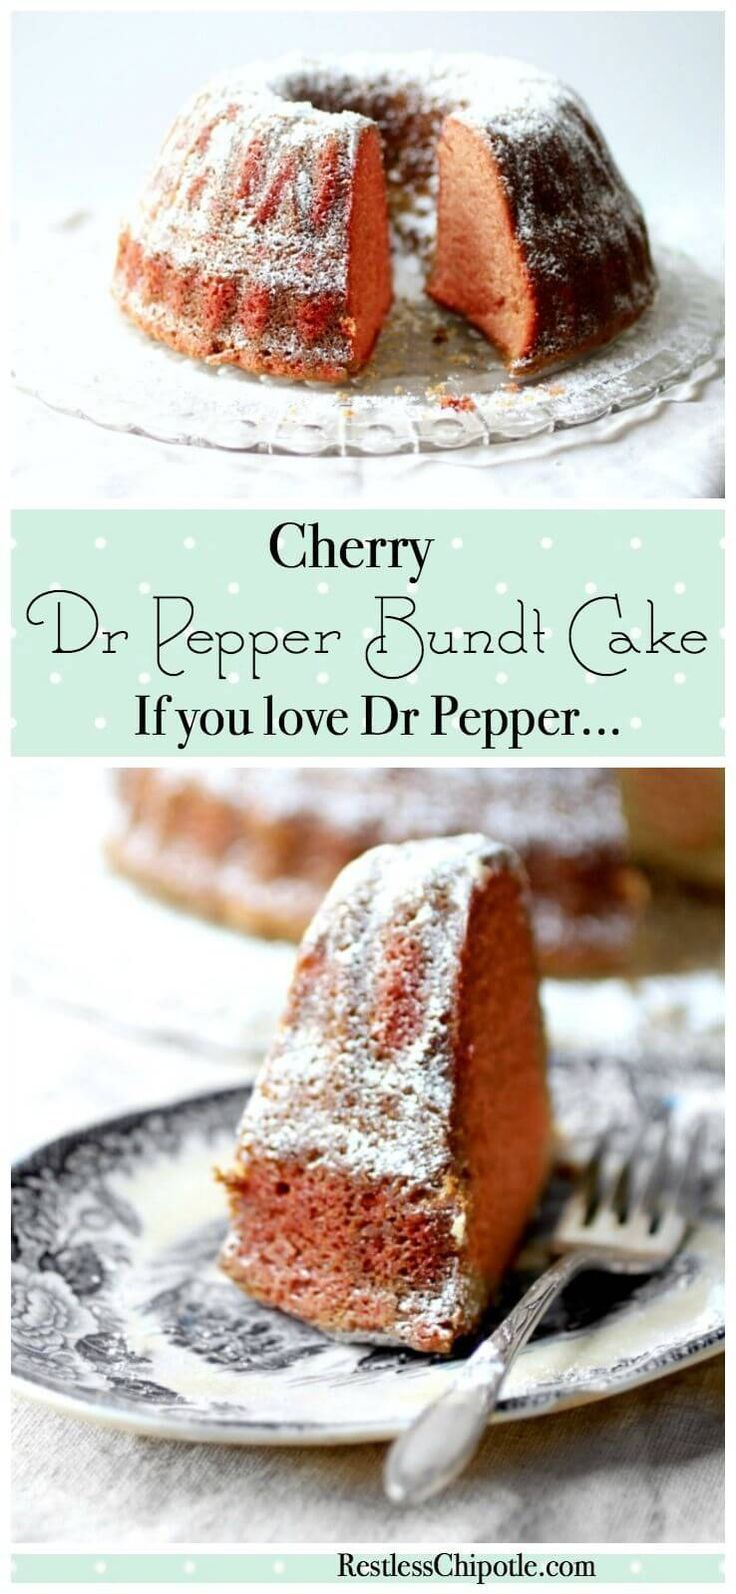 Easy Dr Pepper Cake is made from scratch with original or Cherry Dr Pepper. This bundt cake recipe is SO moist and buttery -- it's unique! From http://RestlessChipotle.com via @Marye at Restless Chipotle